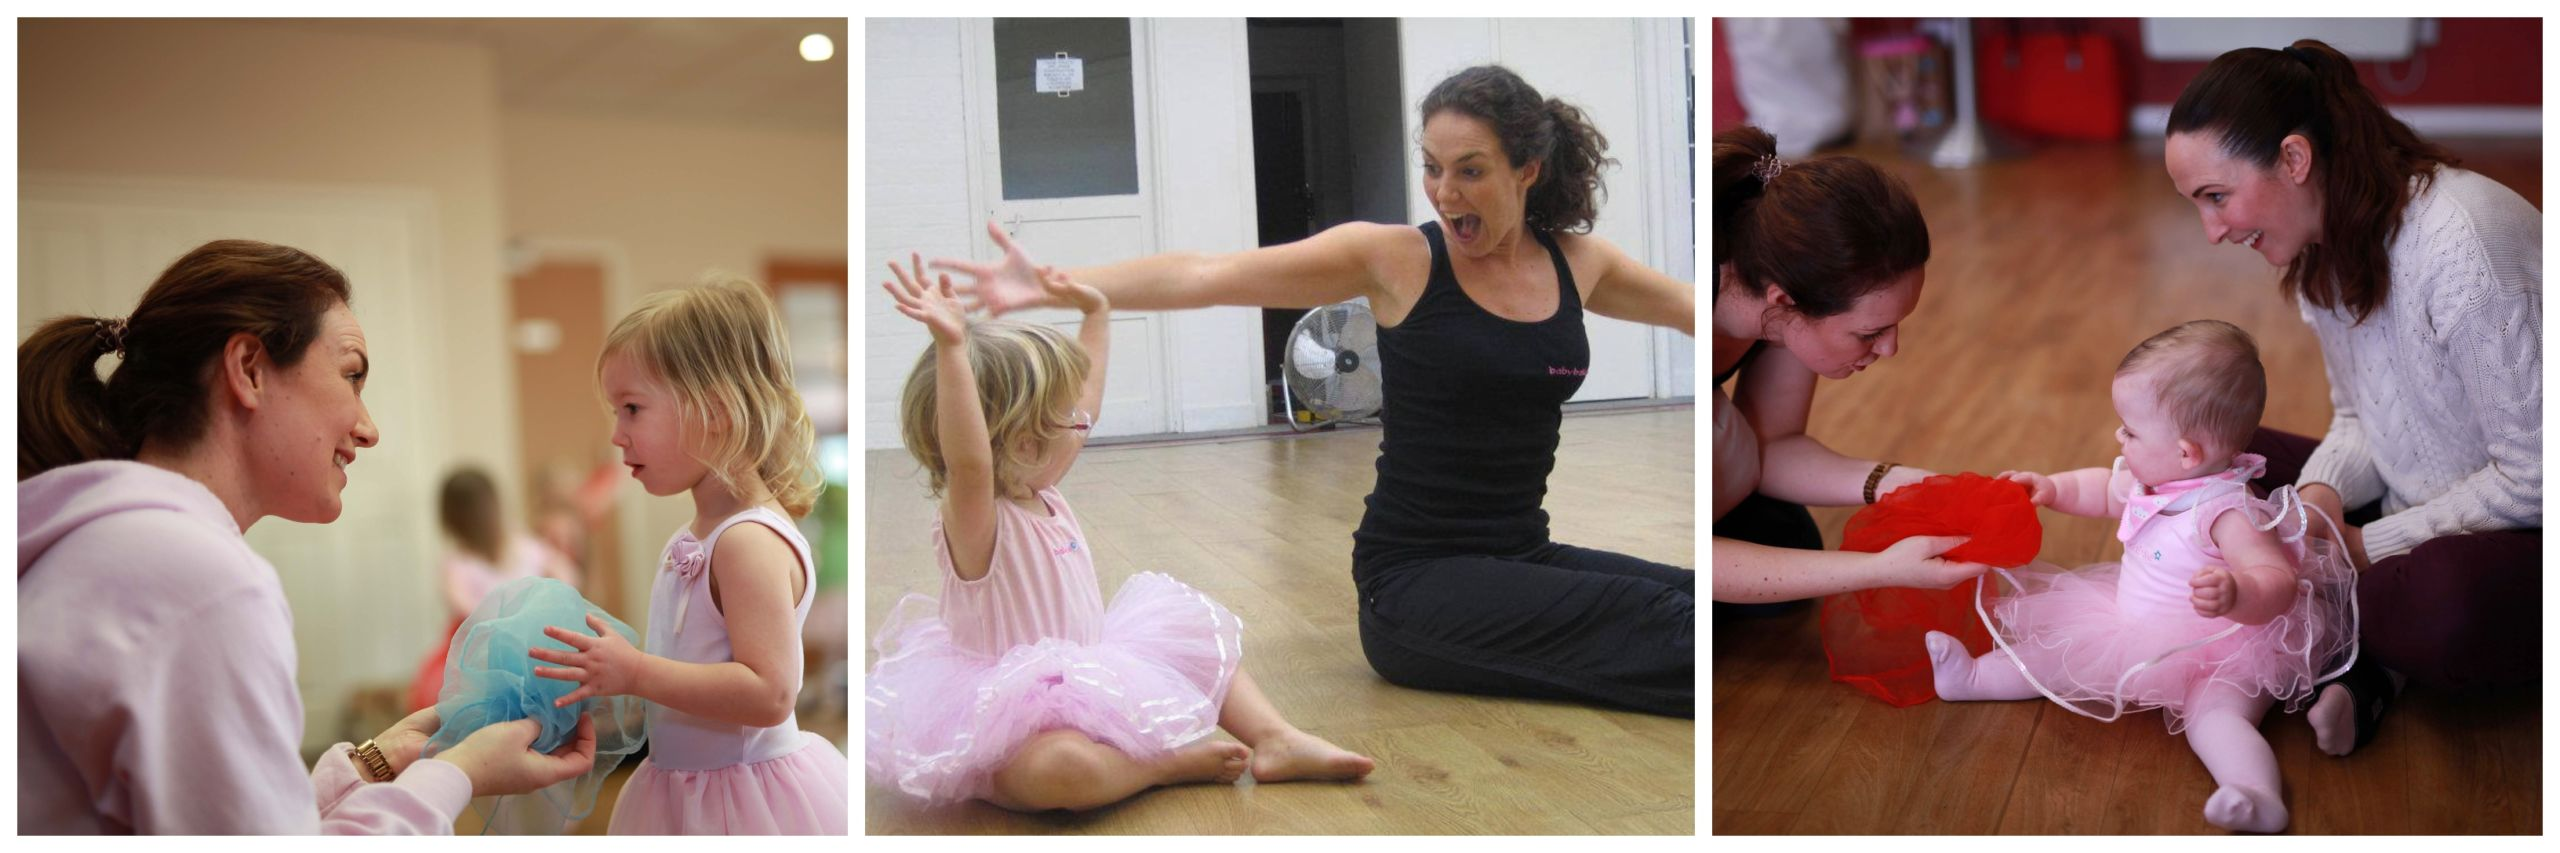 babyballet classes in Southport, Formby and Crosby